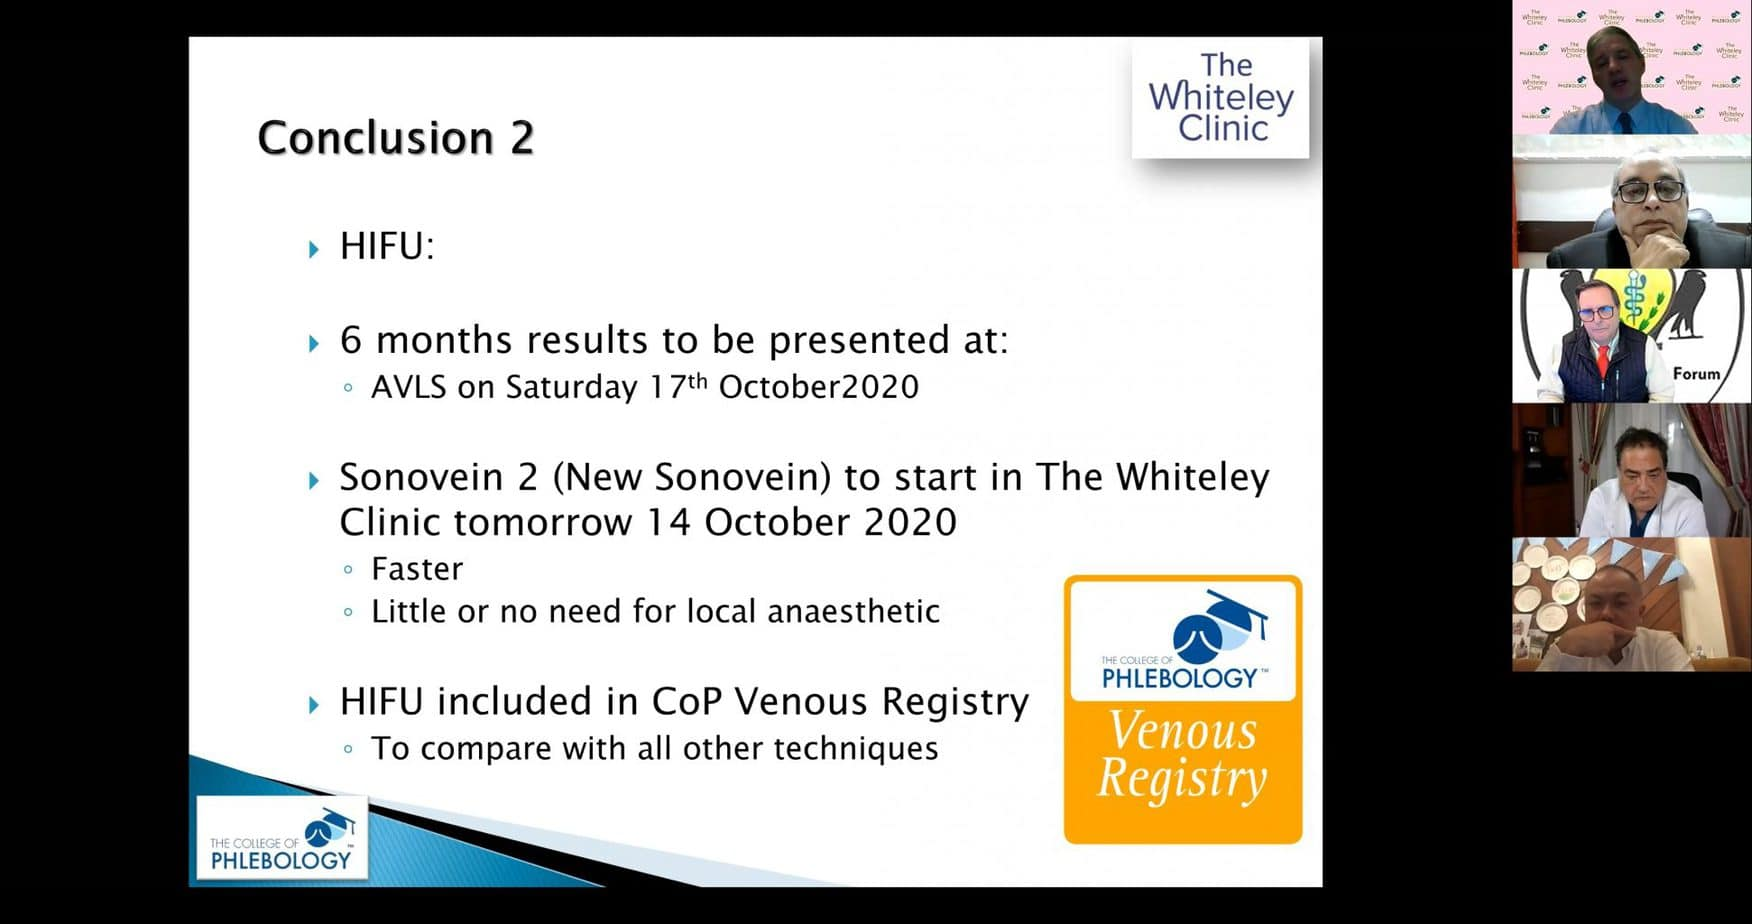 Conclusion of keynote lecture on varicose veins ablation